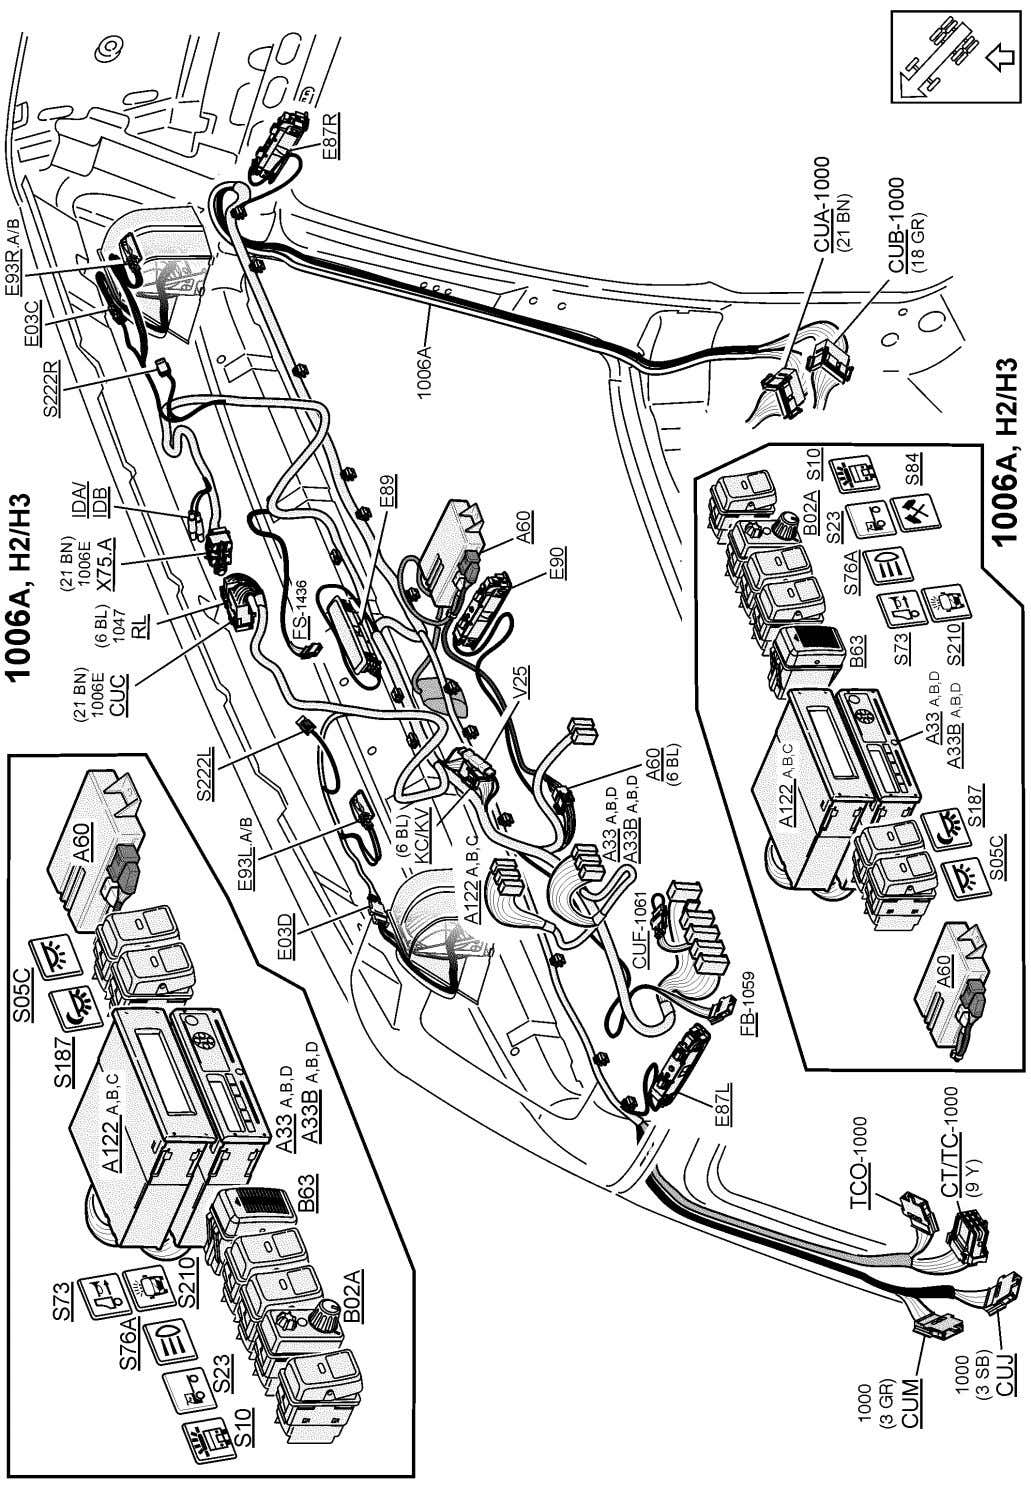 T3059941 Wiring diagram Page 145 (298)